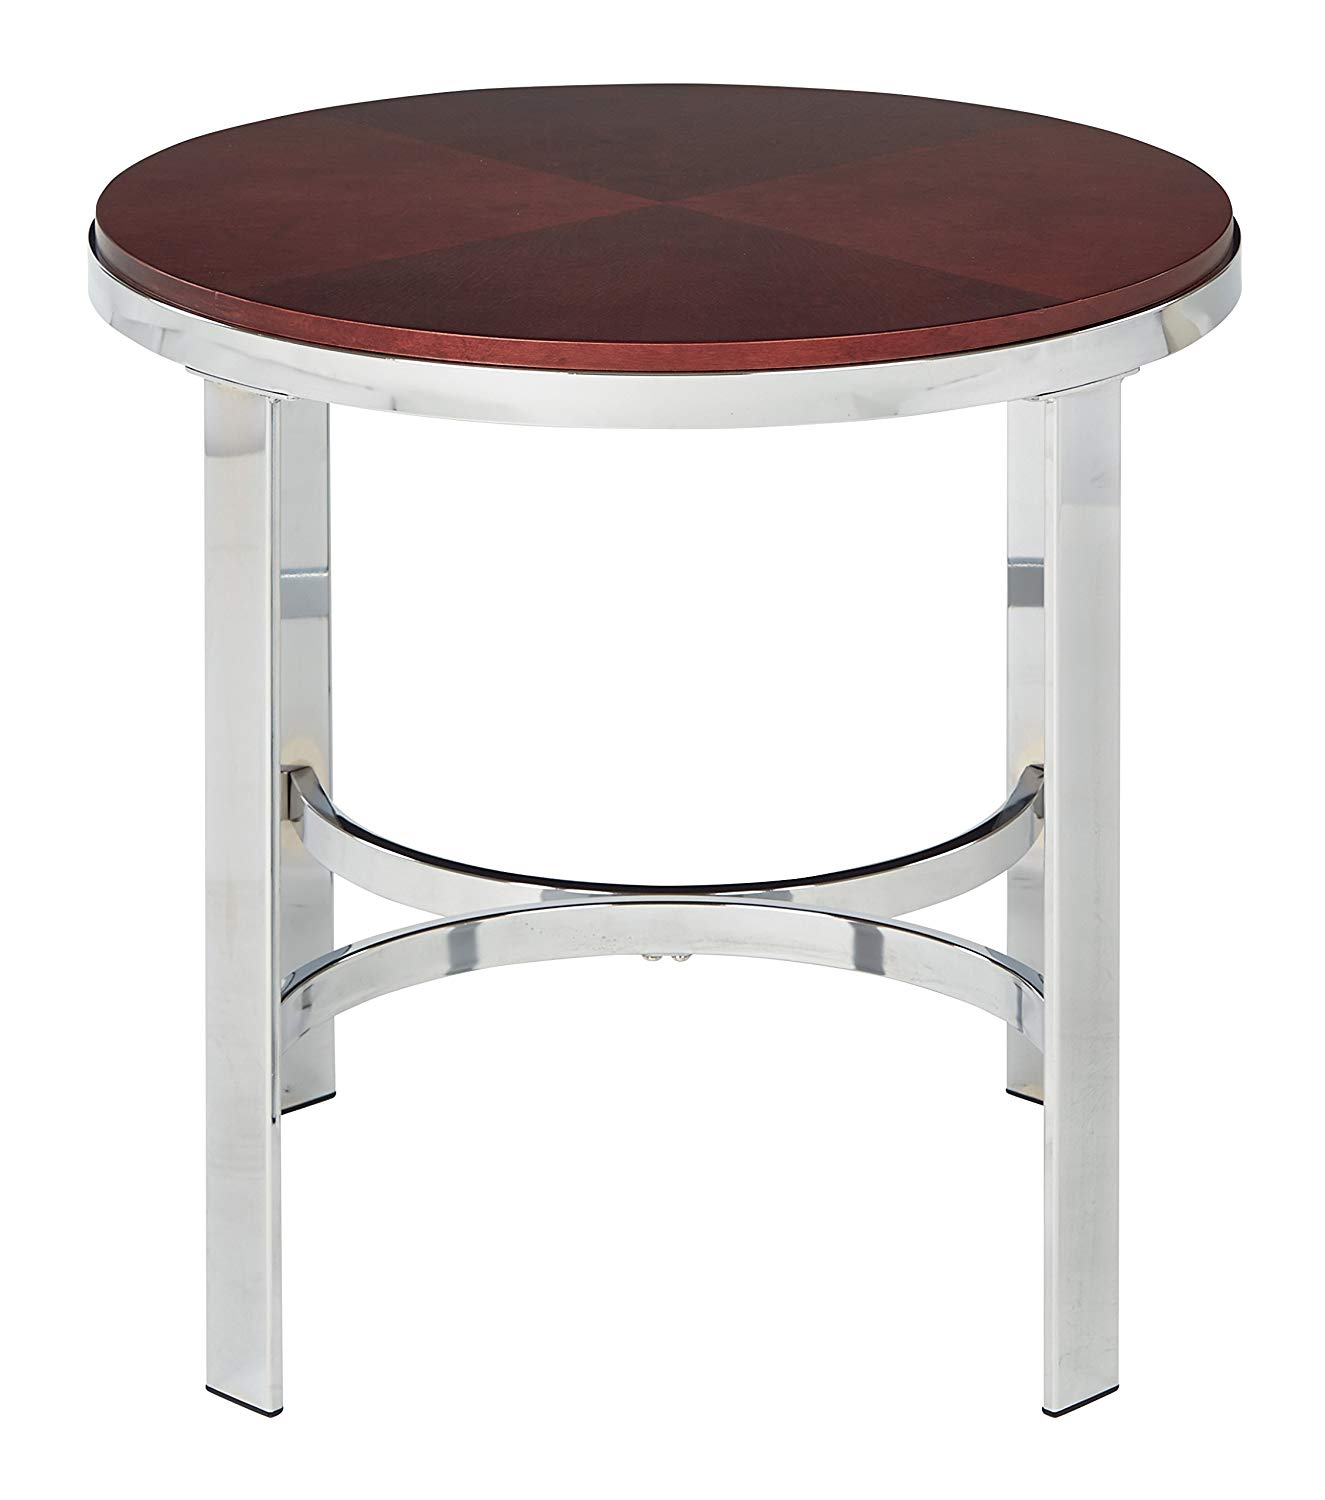 office star alexandria round end table cherry finish top and chrome metal plating legs kitchen dining unstained wood furniture kmart black row accent chairs glass couch mirrored